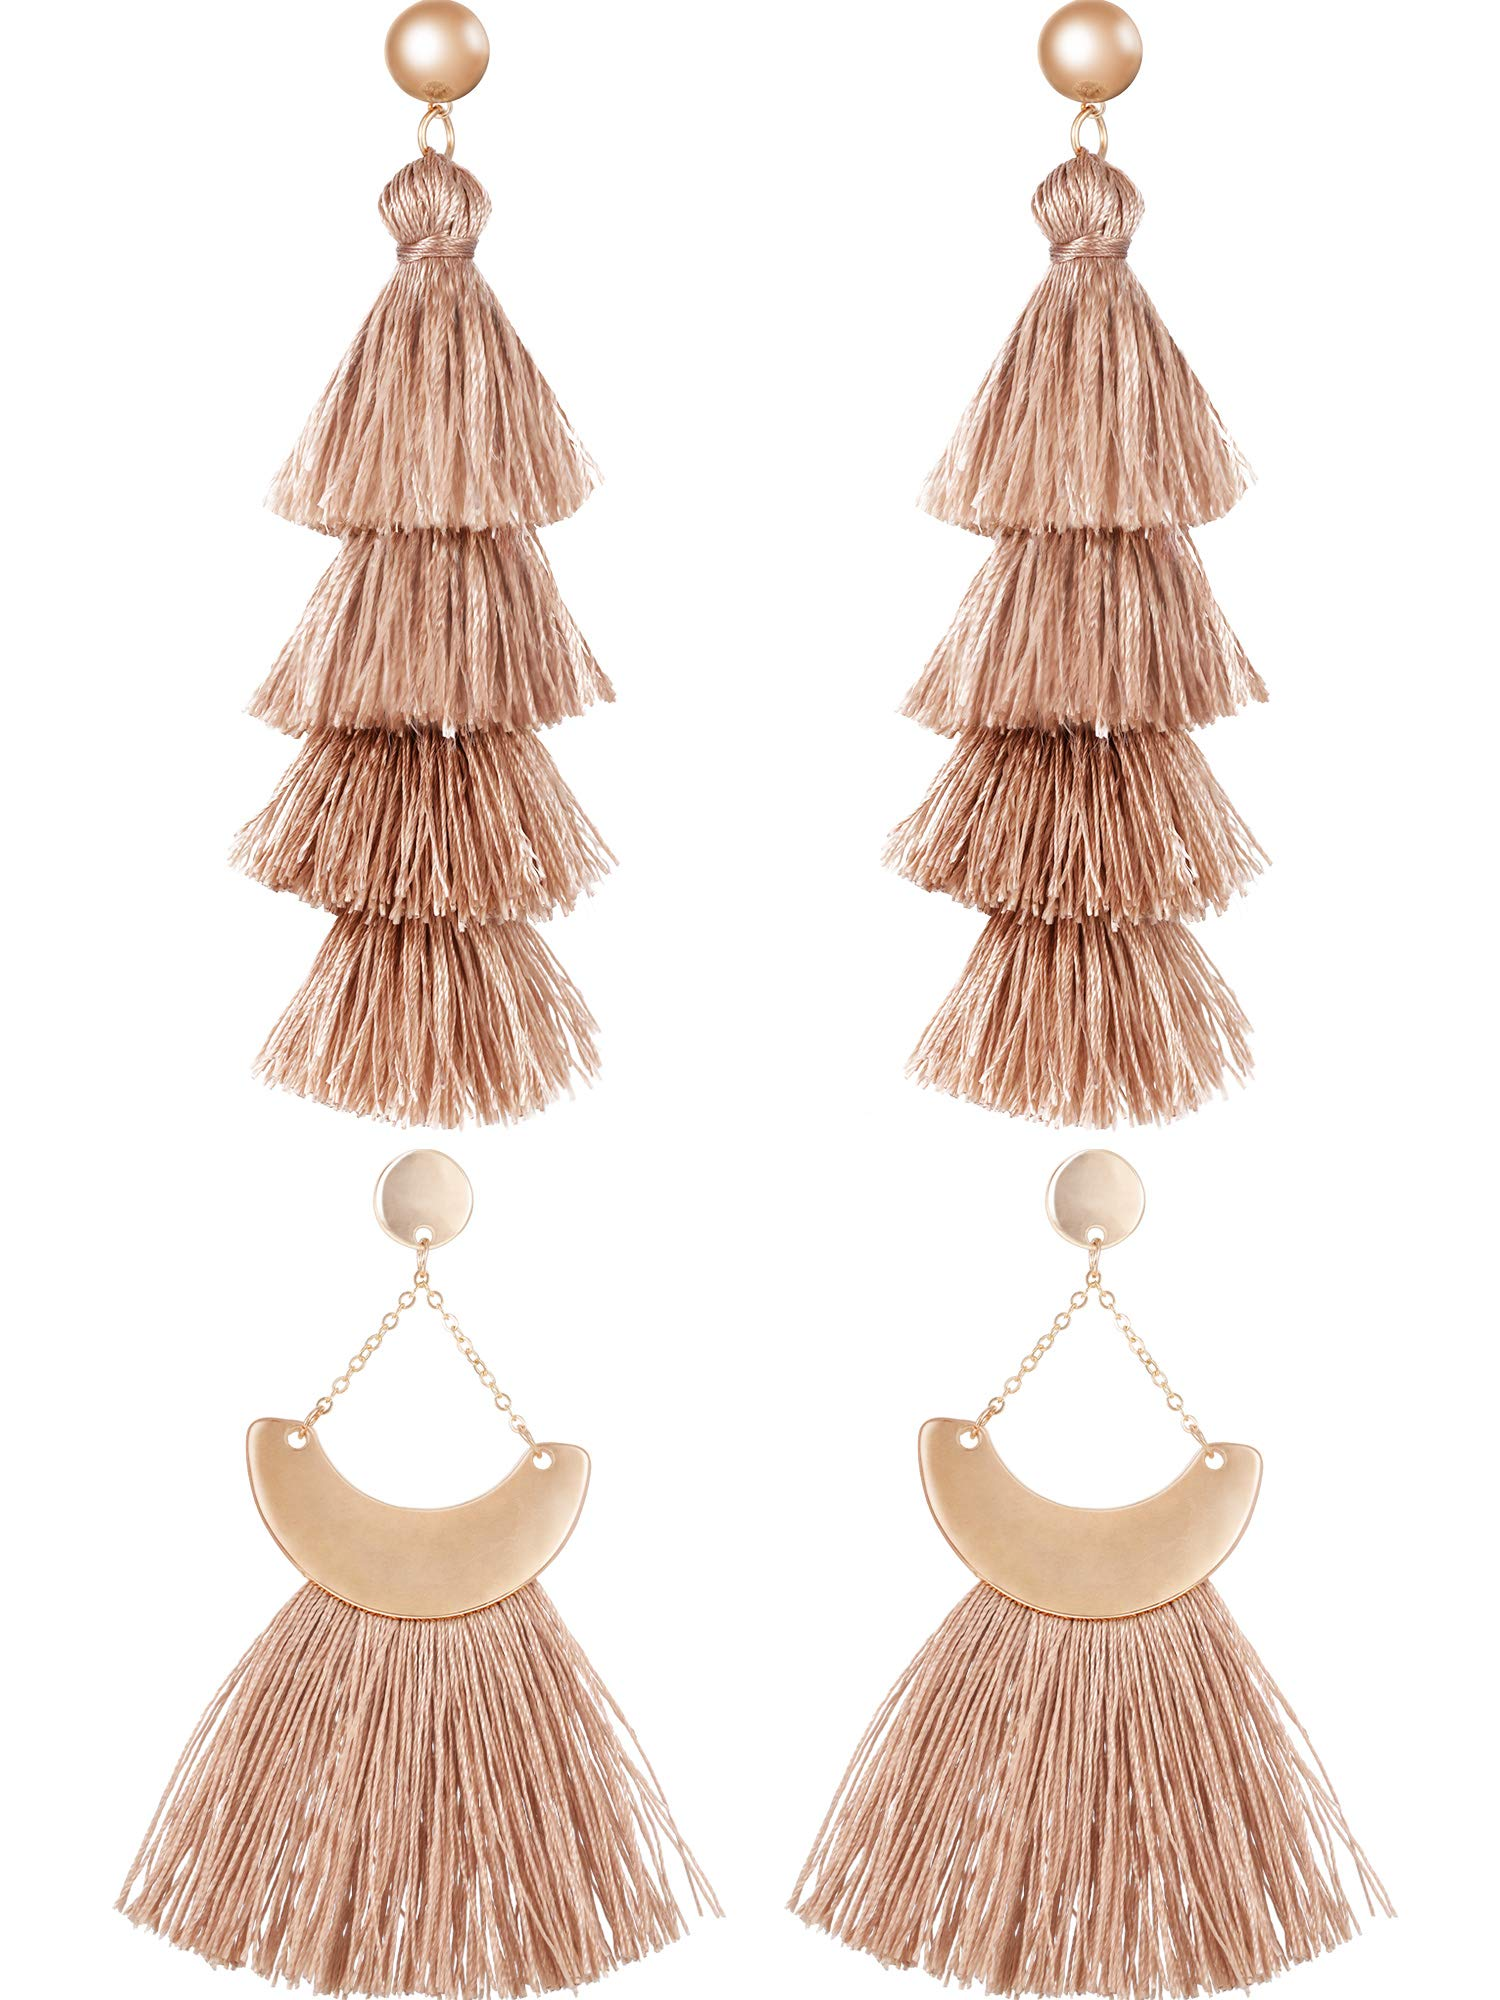 Jovitec 2 Pairs Tassel Earrings Bohemian Handmade Tiered Thread Tassel Dangle Earrings and Fan Tassel Drop Dangle Earring (Camel Color)